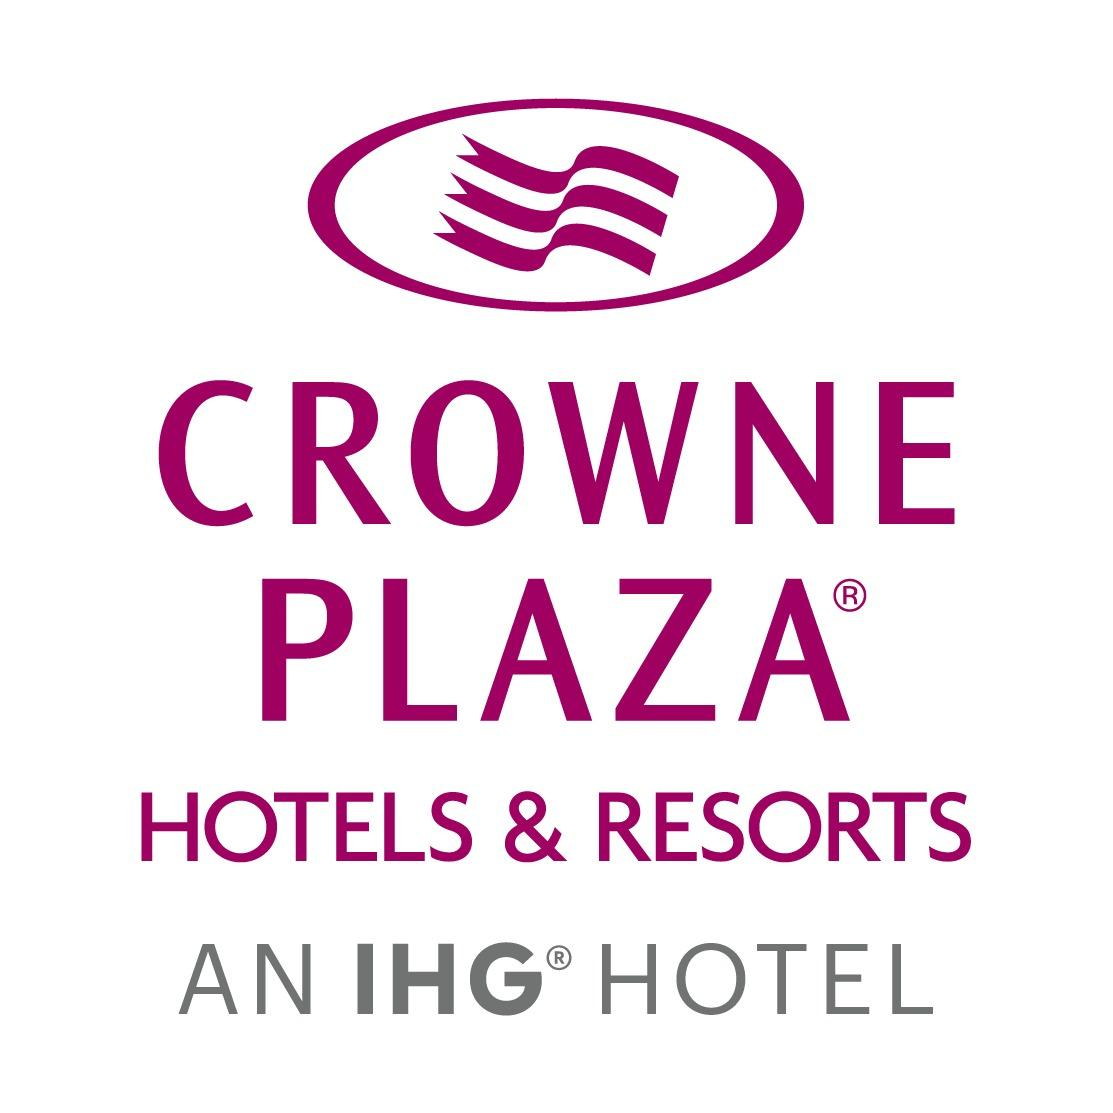 Crowne Plaza Royal Victoria Sheffield - Sheffield, South Yorkshire S4 7YE - 01142 768822 | ShowMeLocal.com